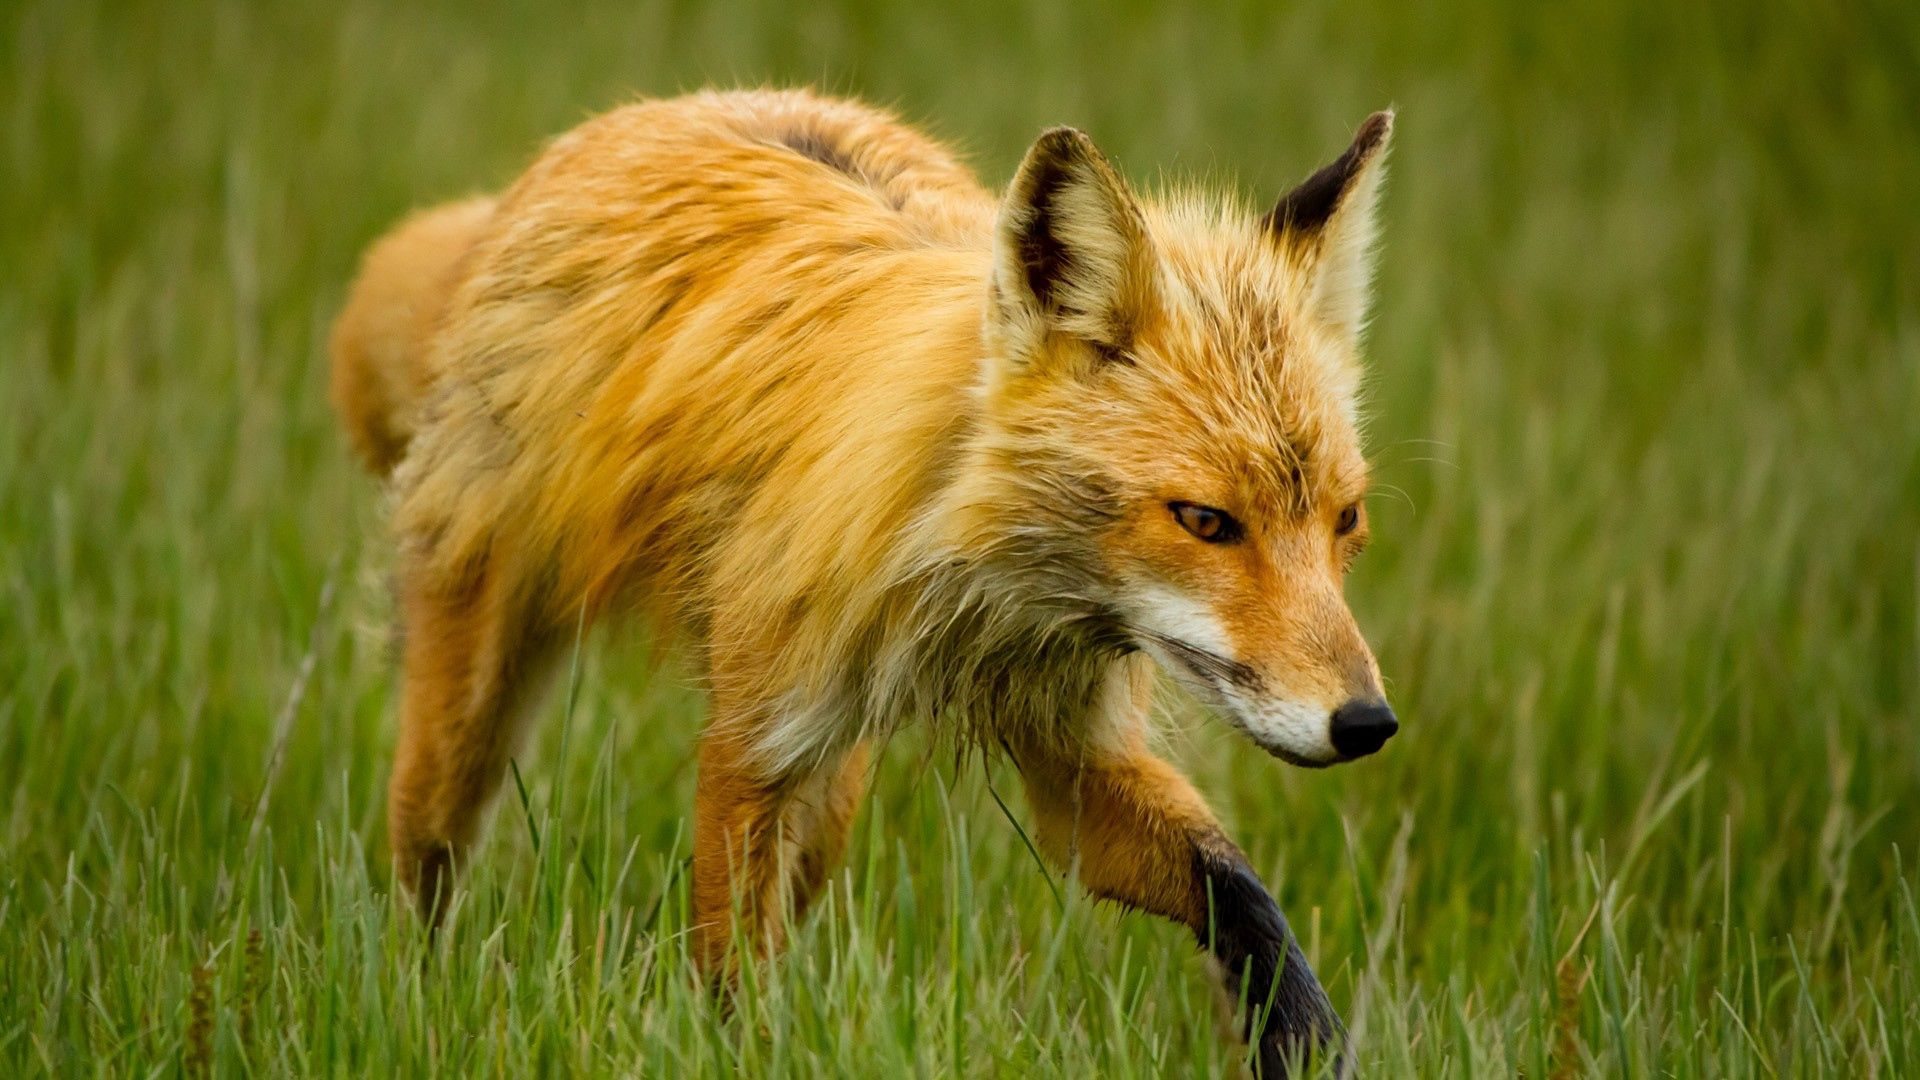 88266 Screensavers and Wallpapers Stroll for phone. Download Animals, Fox, Stroll, Thin, Skinny pictures for free